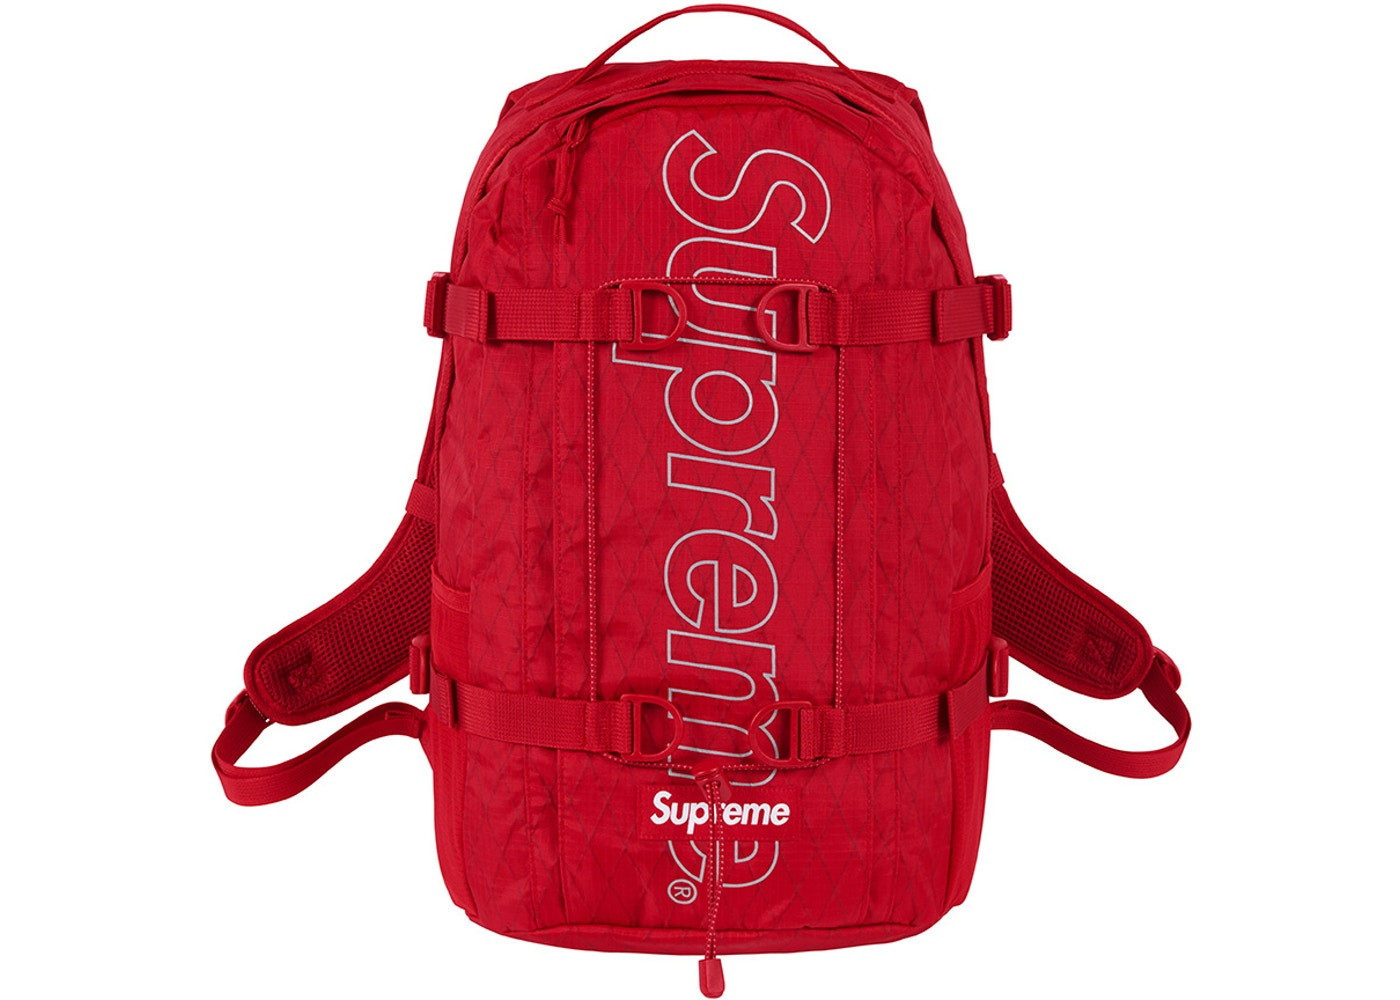 pretty nice 08c25 c1fac Supreme-Backpack-FW18-Red.jpg v 1534950180